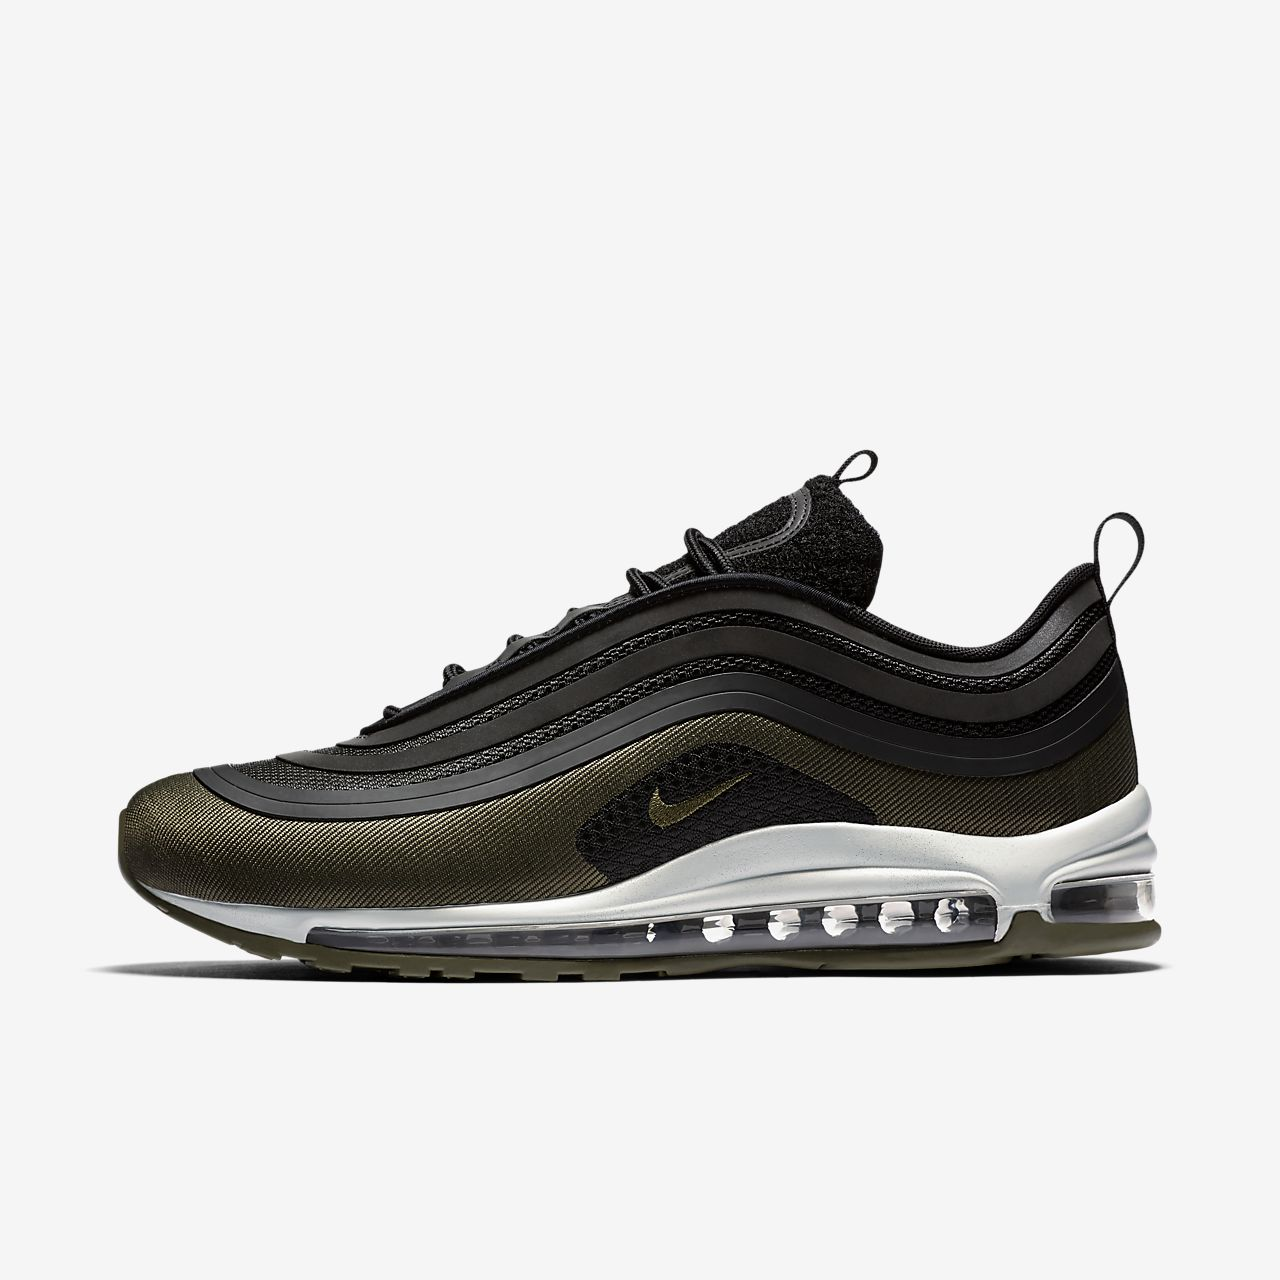 nike air max 97 ultra 17 premium black & orange